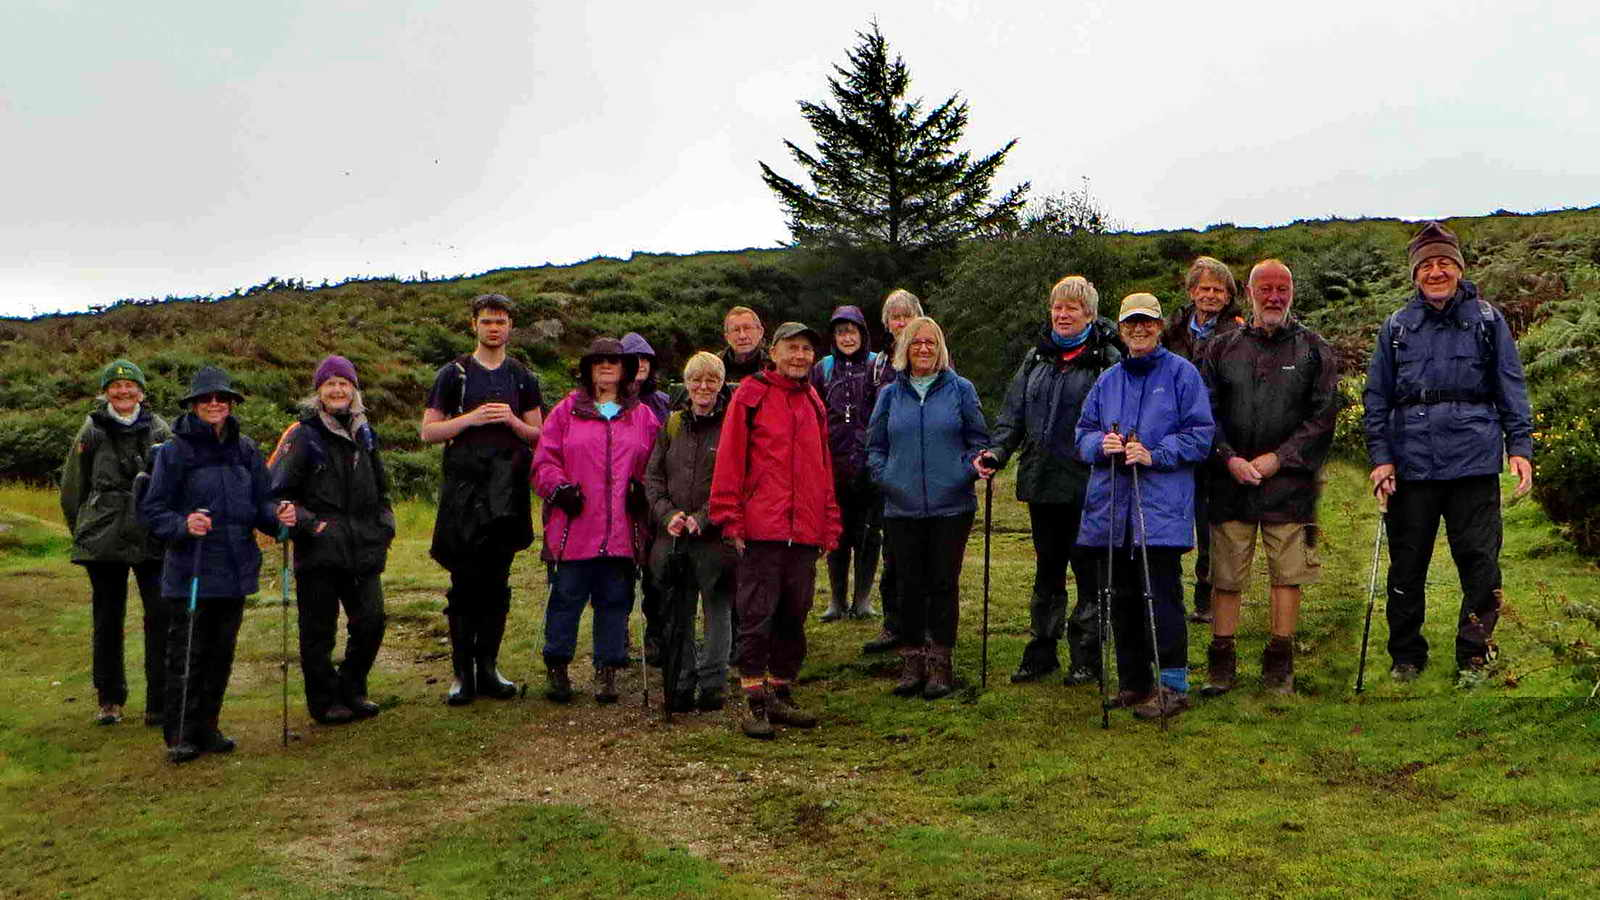 The group on Welstor Common Rifle Range